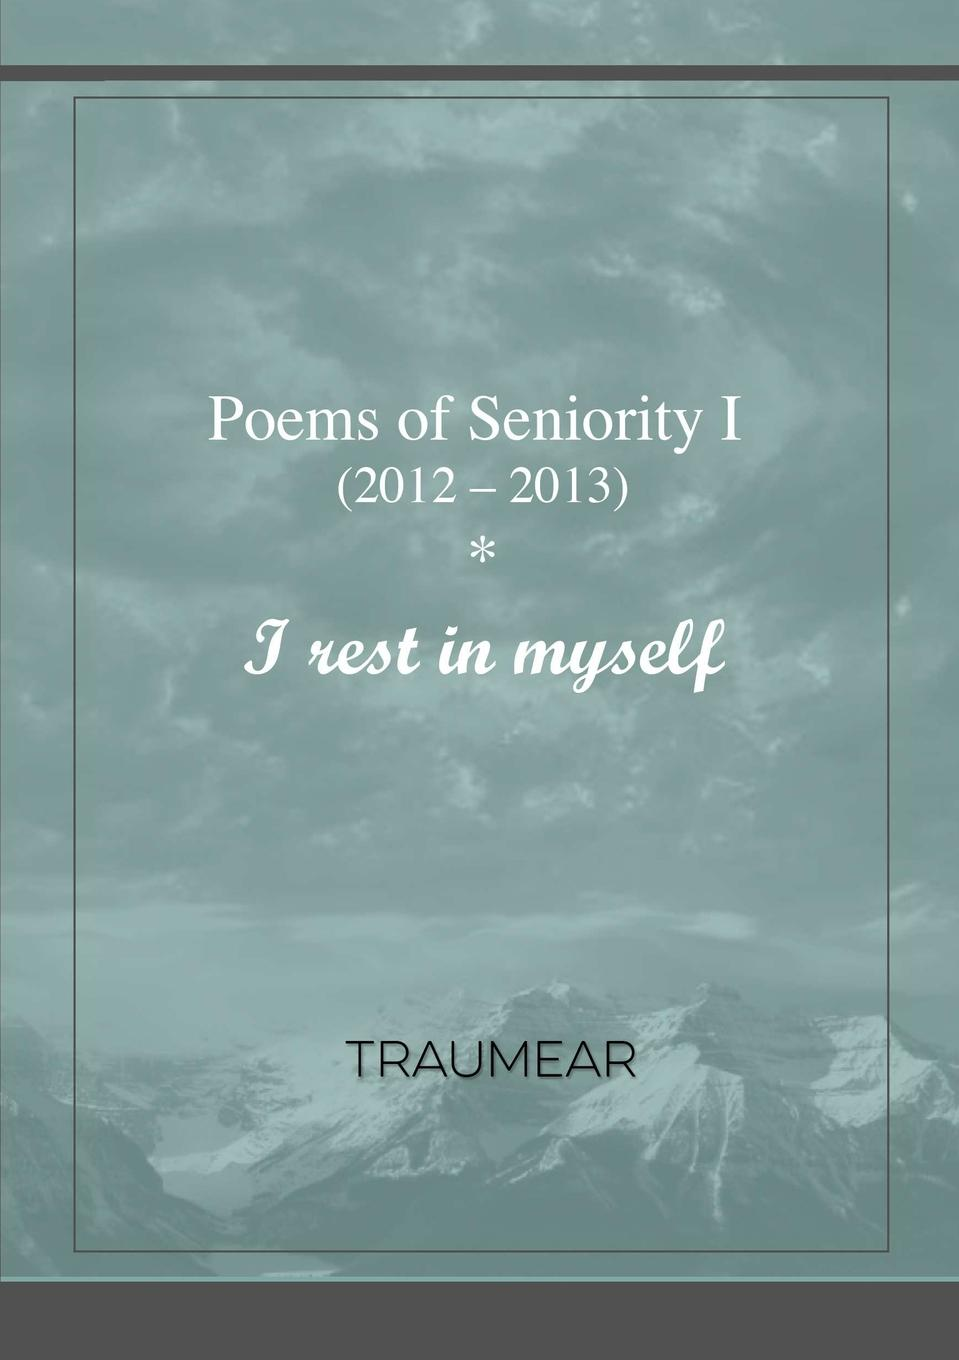 Traumear Poems of Seniority I - I rest in myself charents yeghishe poems of yeghishe charent